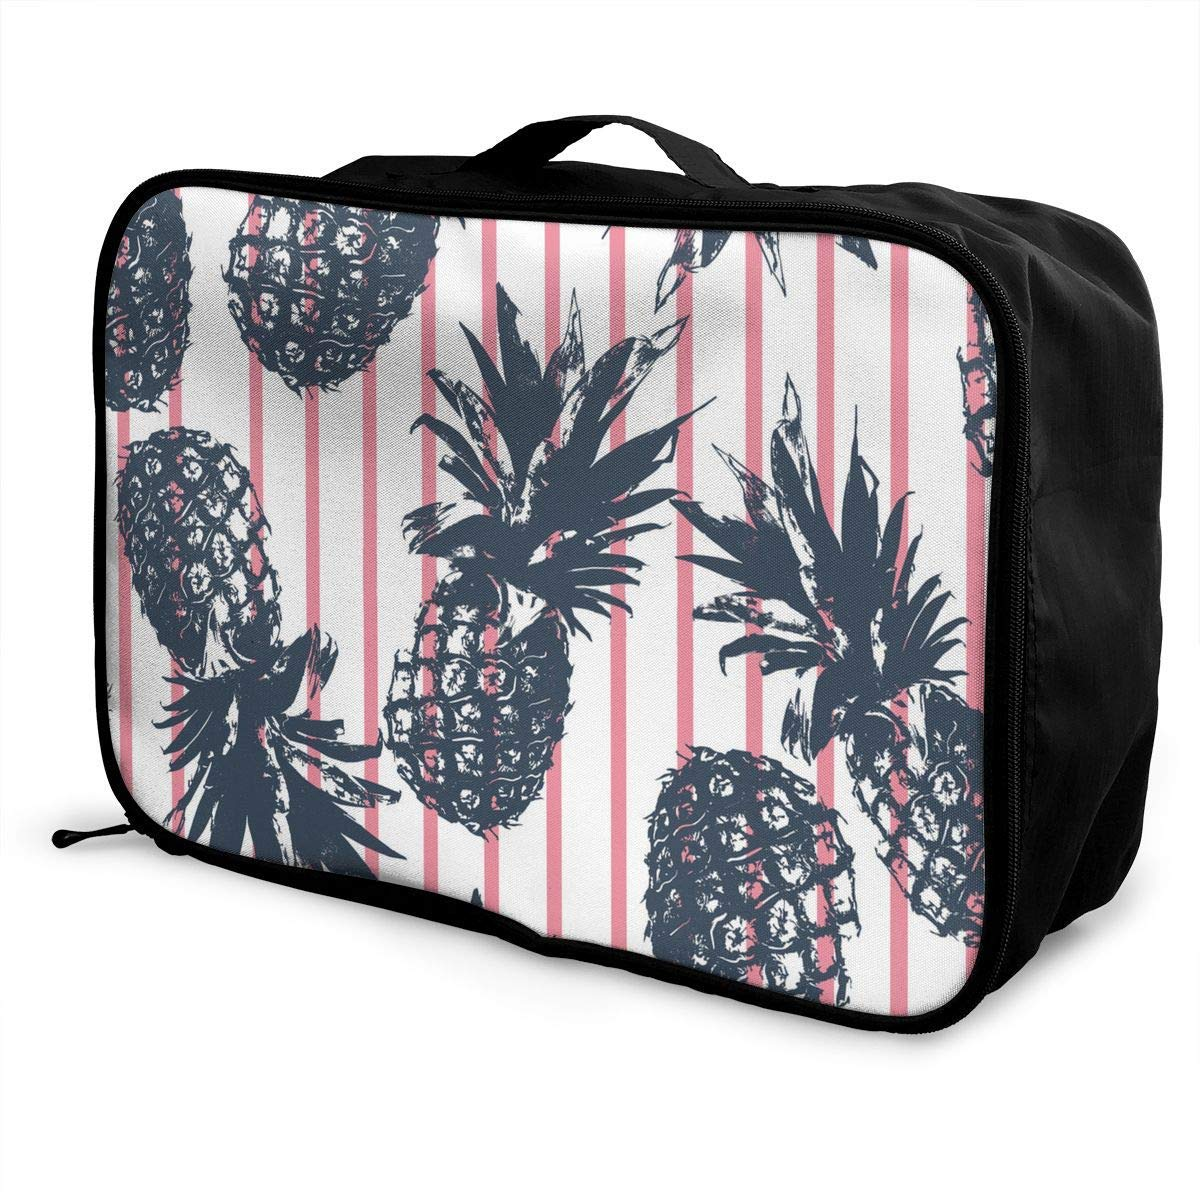 JTRVW Luggage Bags for Travel Tropical Plants Funny Pineapple Travel Duffel Bag Waterproof Fashion Lightweight Large Capacity Portable Duffel Bag for Men /& Women